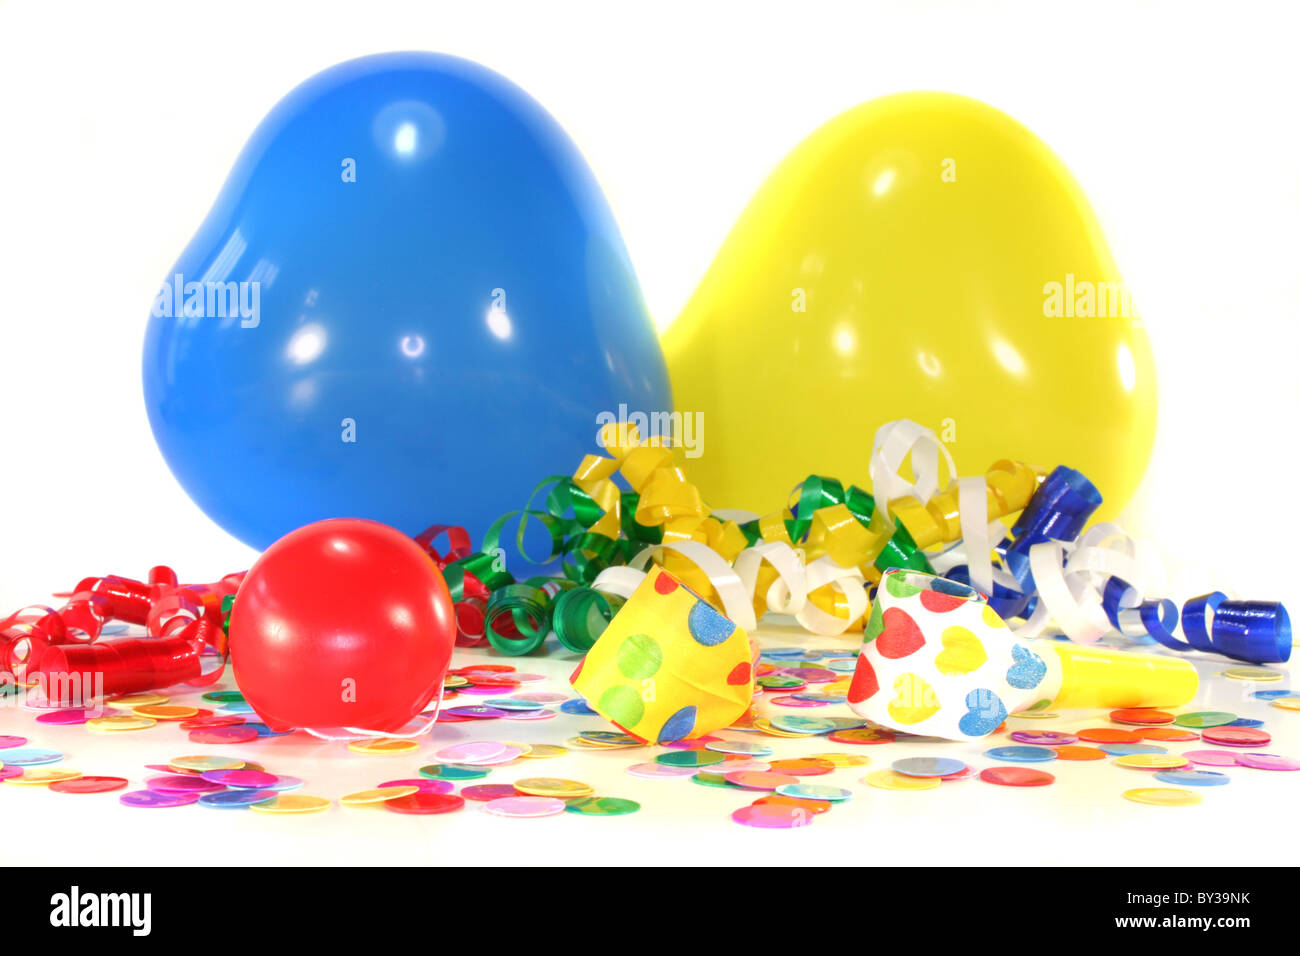 Noisemaker with a red clown nose, colorful confetti, heart balloons and streamers - Stock Image